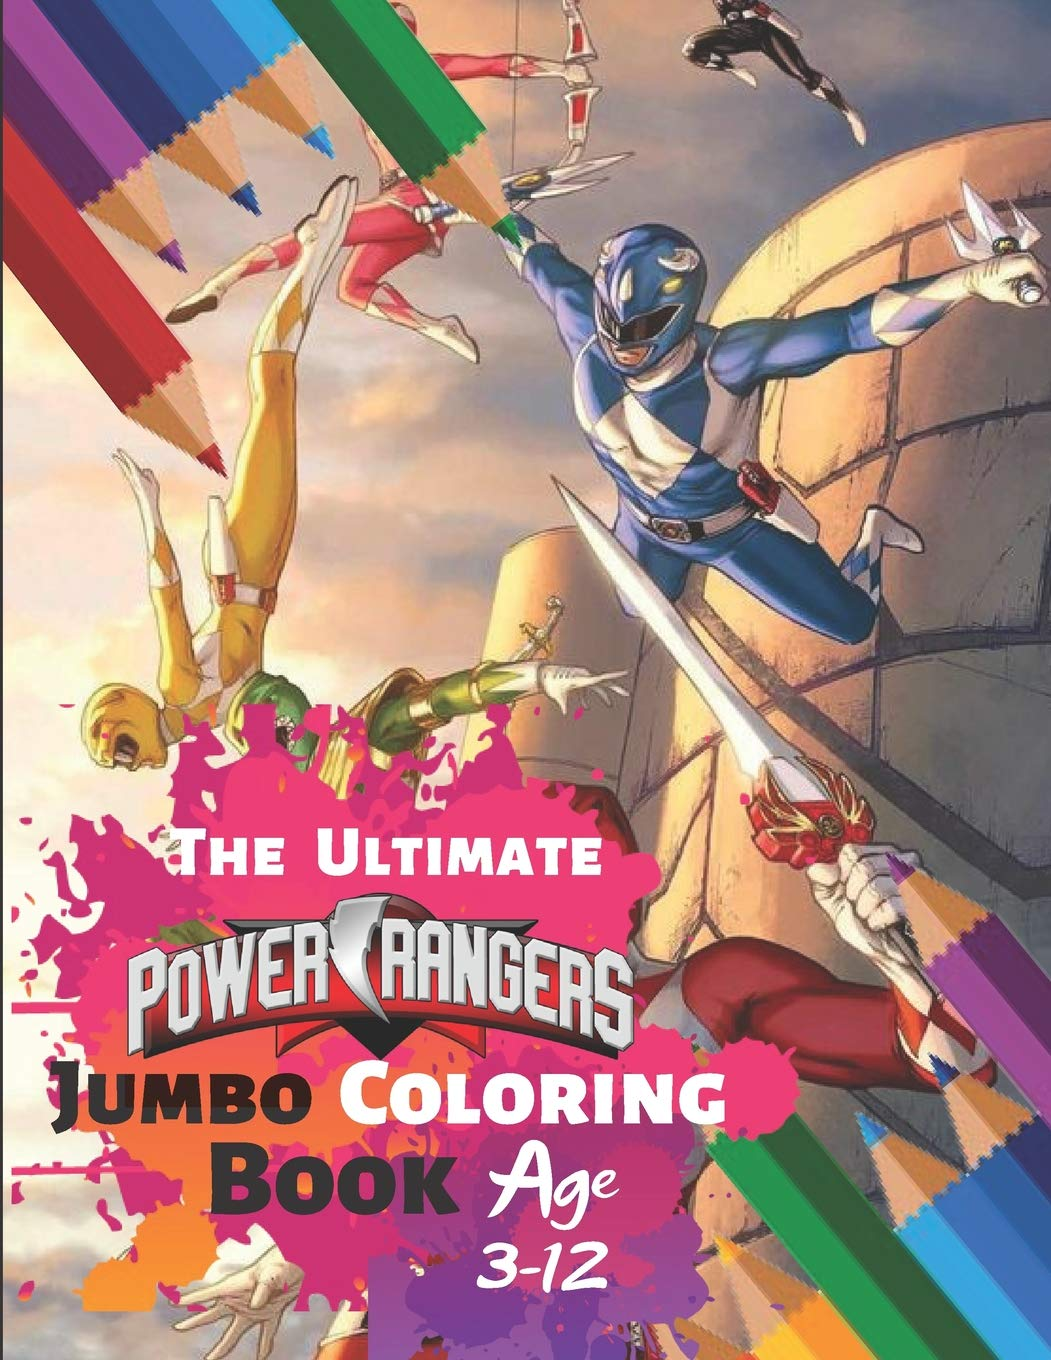 The Ultimate Power Rangers Jumbo Coloring Book Age 3 12 Coloring Book For Kids And Adults Activity Book With Fun Easy And Relaxing Coloring Pages Children With 33 High Quality Illustration Amazon Co Uk